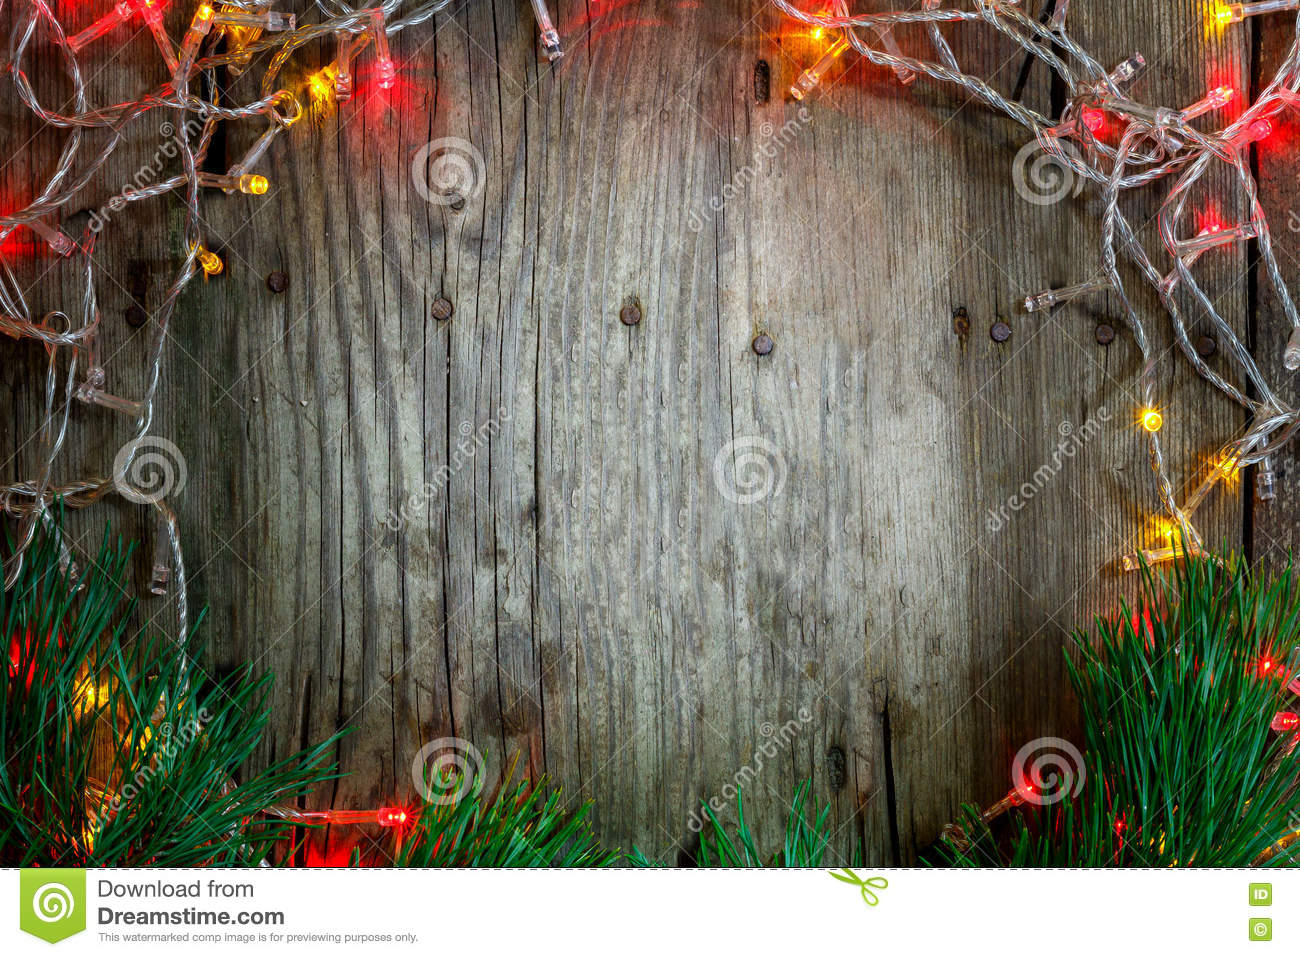 Colorful Christmas Garland Lights On Wooden Rustic Background